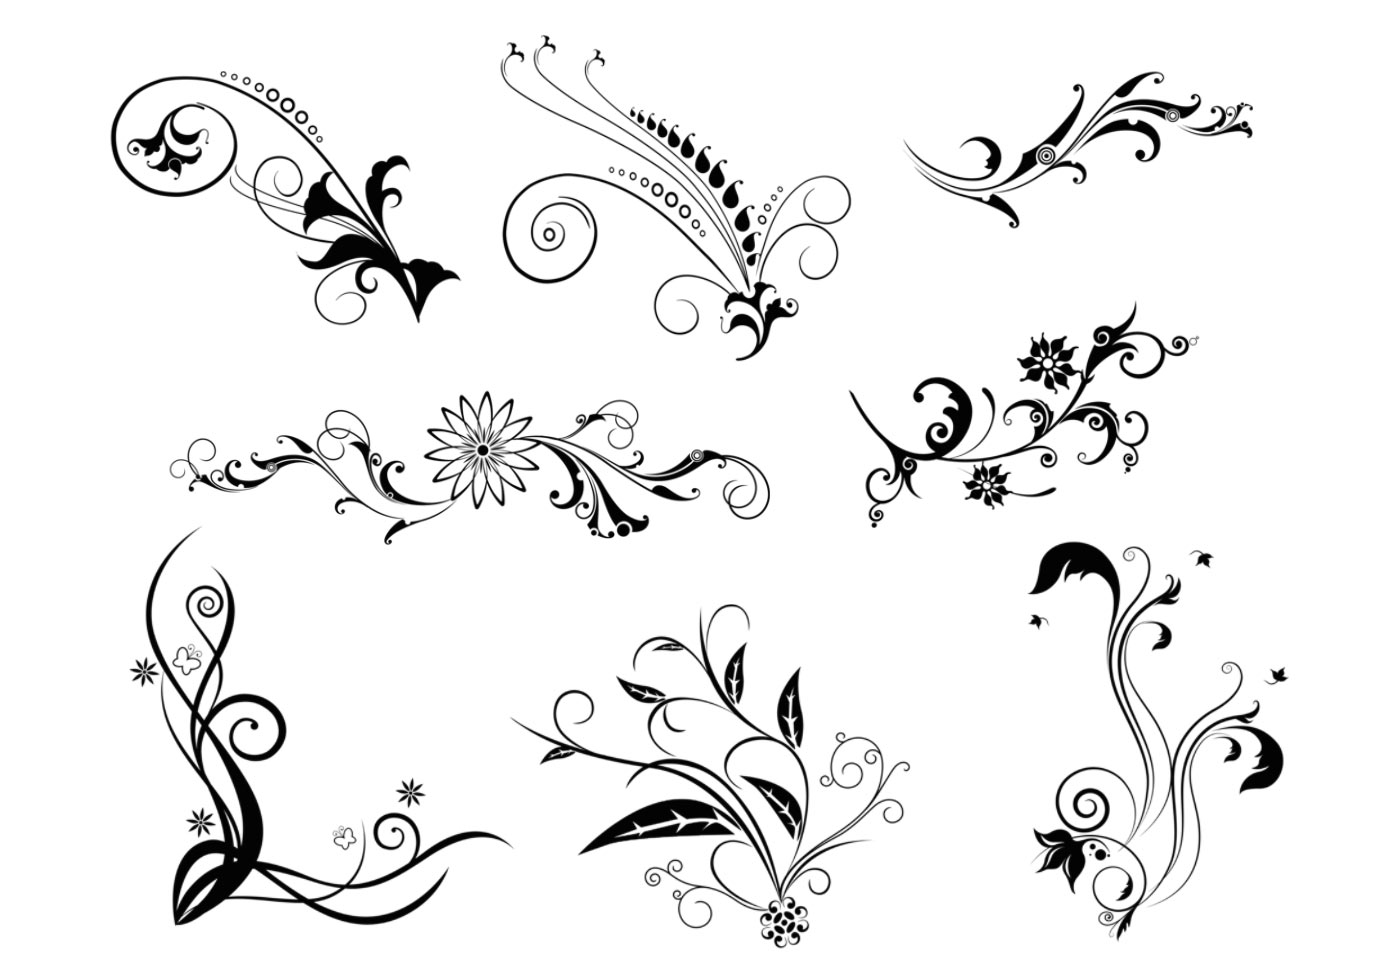 8 floral swirls vector pack download free vector art stock graphics images. Black Bedroom Furniture Sets. Home Design Ideas